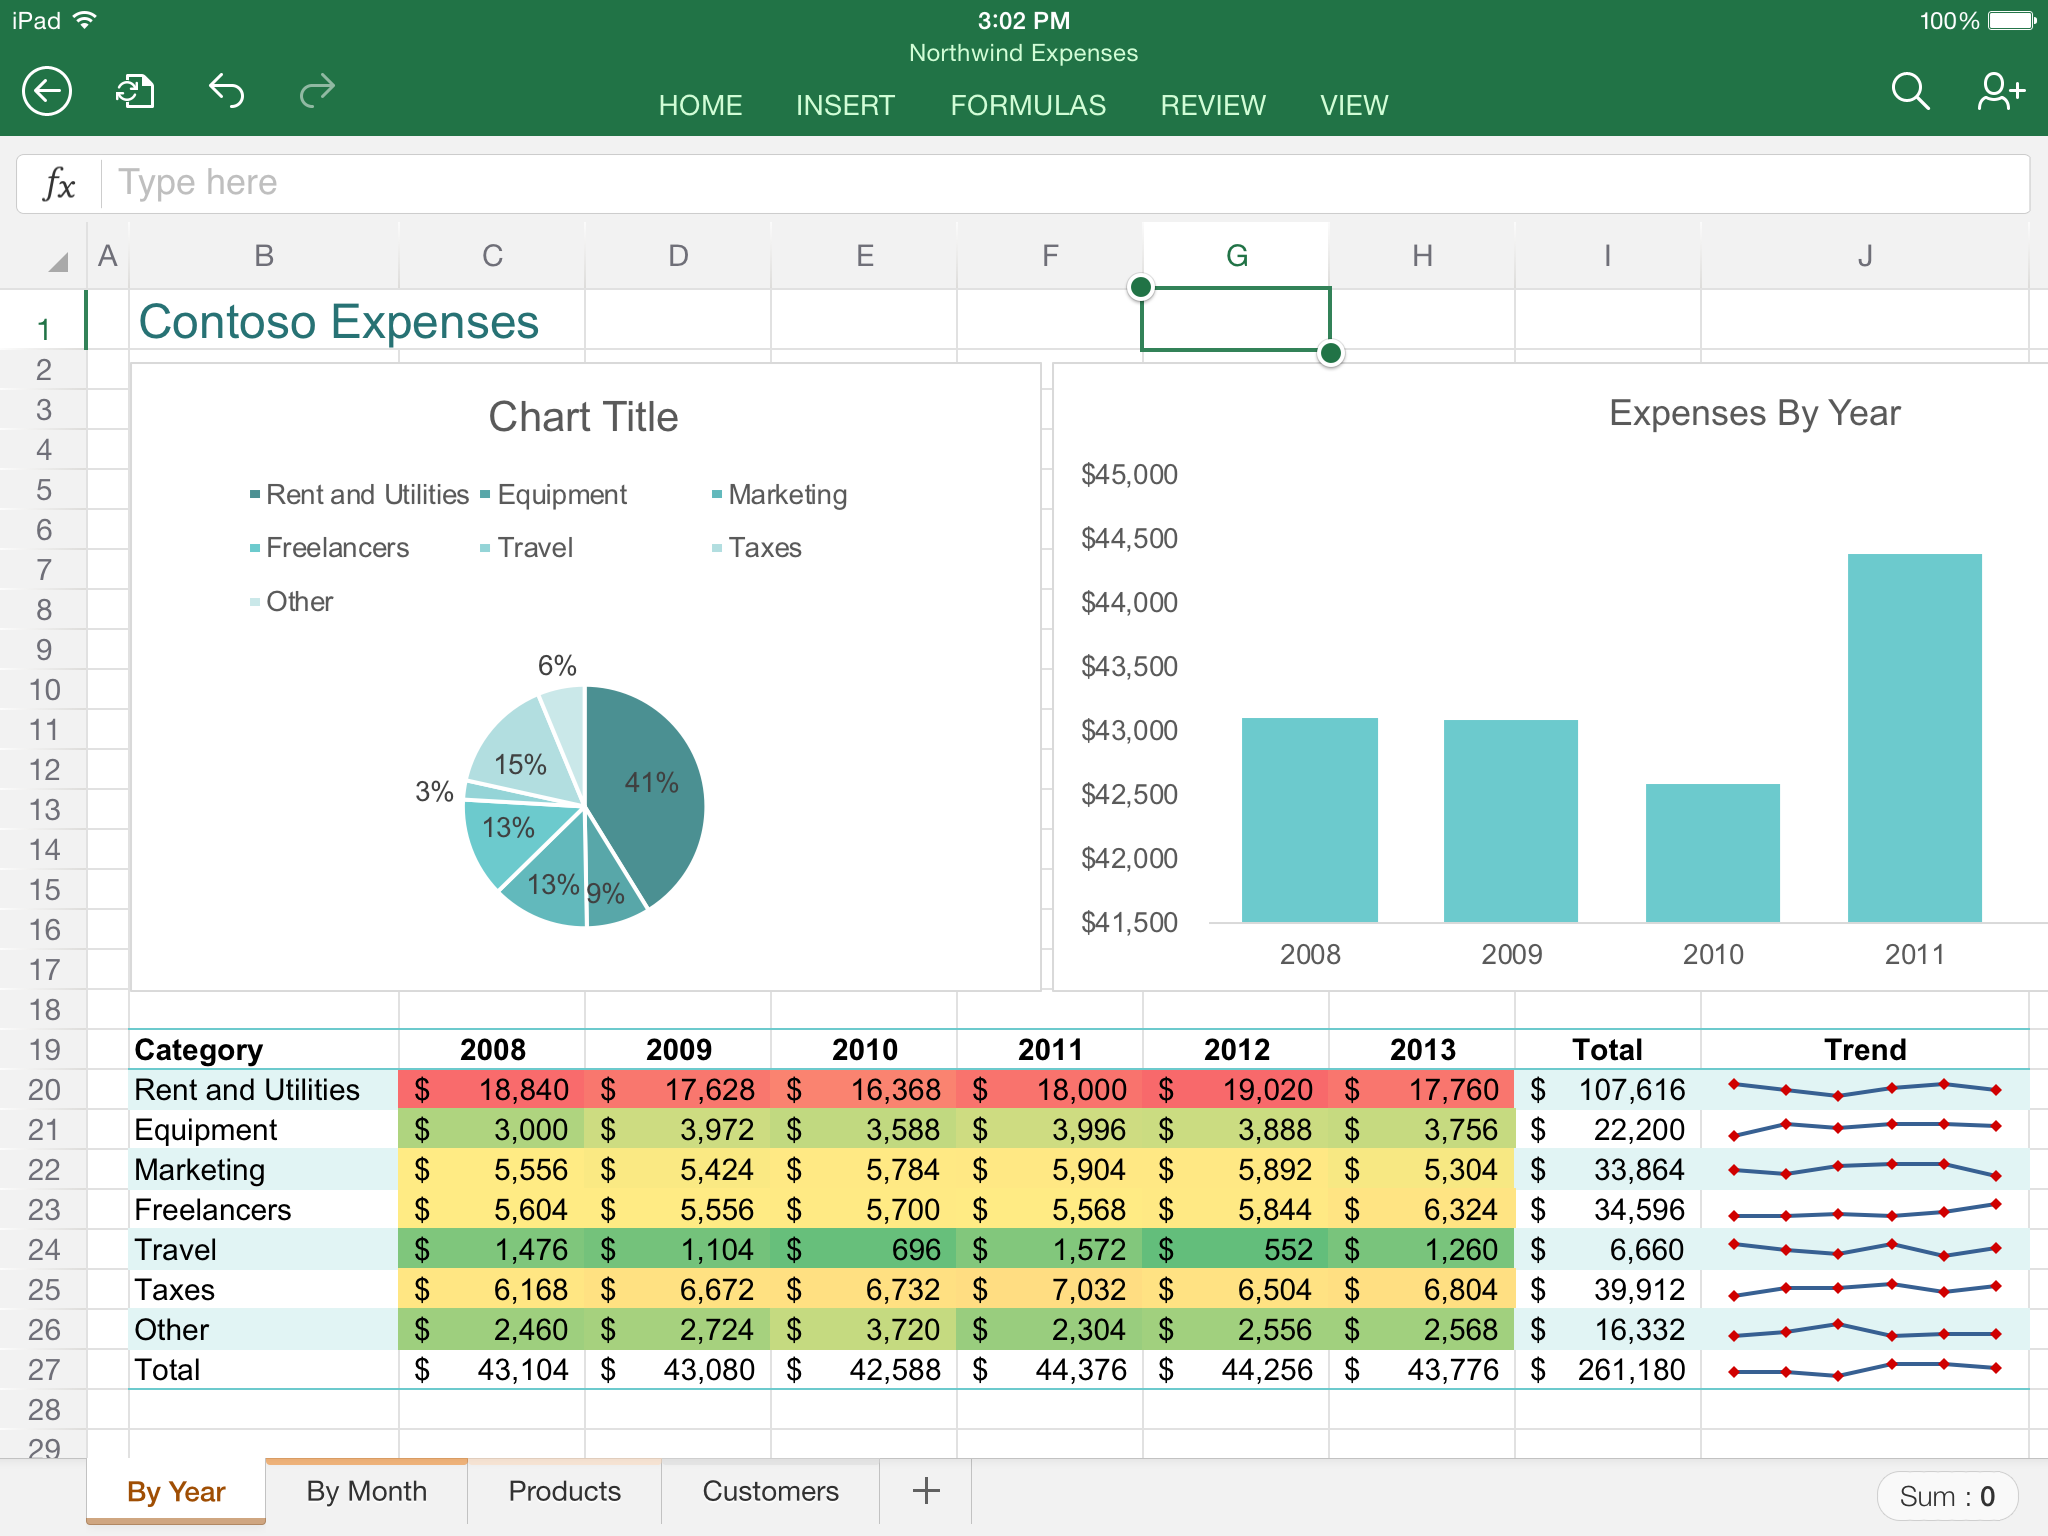 Ediblewildsus  Wonderful App Highlight Excel  Mobile Digital Now With Remarkable Excel In Action With Easy On The Eye Adding Solver To Excel Also Excel Vba Compare Strings In Addition Excel Task Tracker Template And Len Excel Function As Well As Sheet Reference Excel Additionally Gantt Chart Excel  Template From Youstonybrookedu With Ediblewildsus  Remarkable App Highlight Excel  Mobile Digital Now With Easy On The Eye Excel In Action And Wonderful Adding Solver To Excel Also Excel Vba Compare Strings In Addition Excel Task Tracker Template From Youstonybrookedu